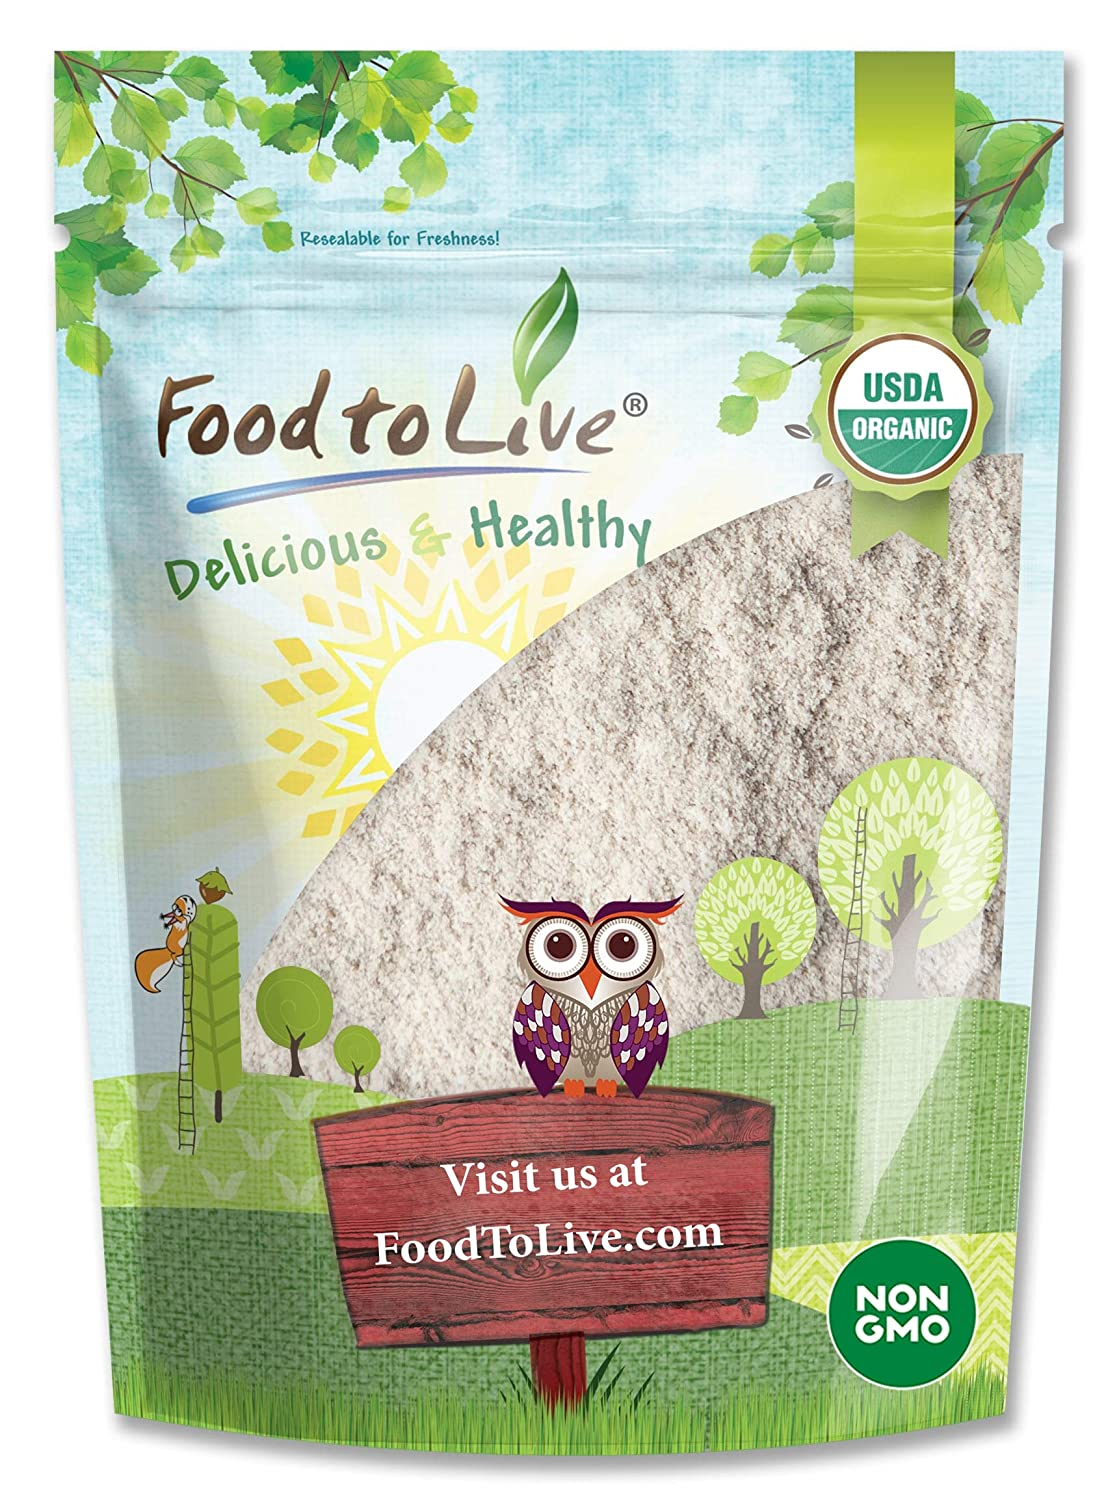 Organic Brown Rice Flour, 12 Ounces - Non-GMO, Finely Ground from Long Grain Rice, Unbleached, Untreated, Vegan Meal, Kosher, Bulk Powder, High in Protein, Sodium Free